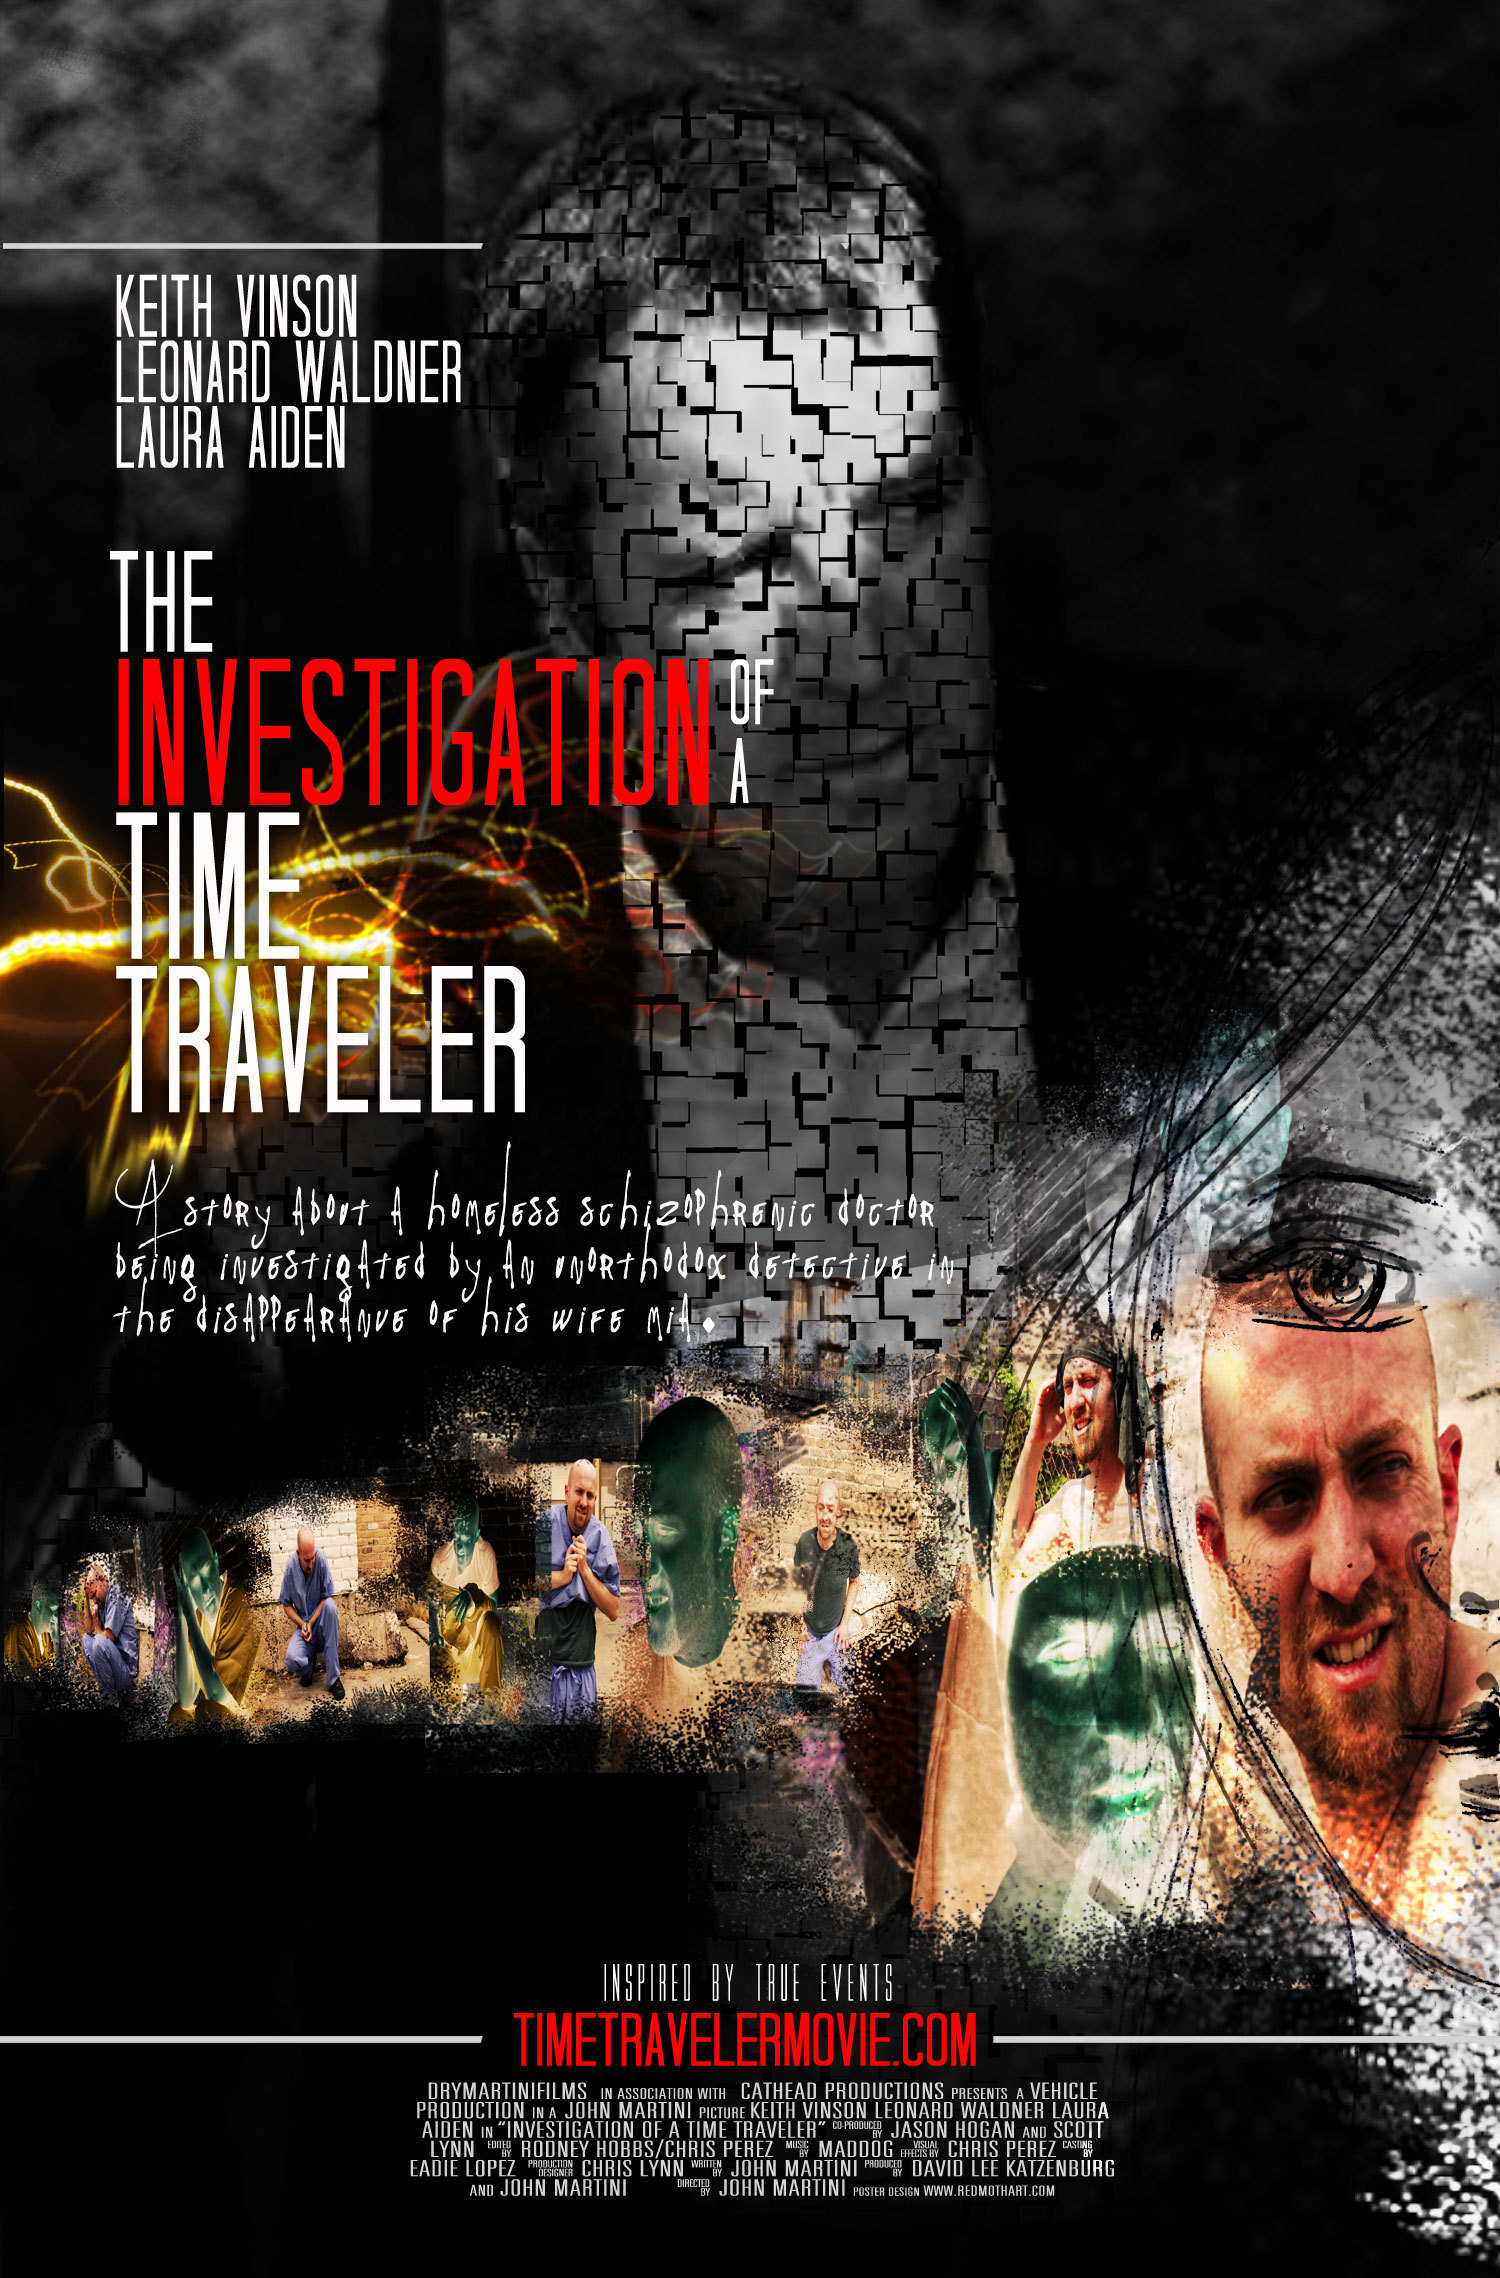 the investigation of a time traveler 2013 imdb